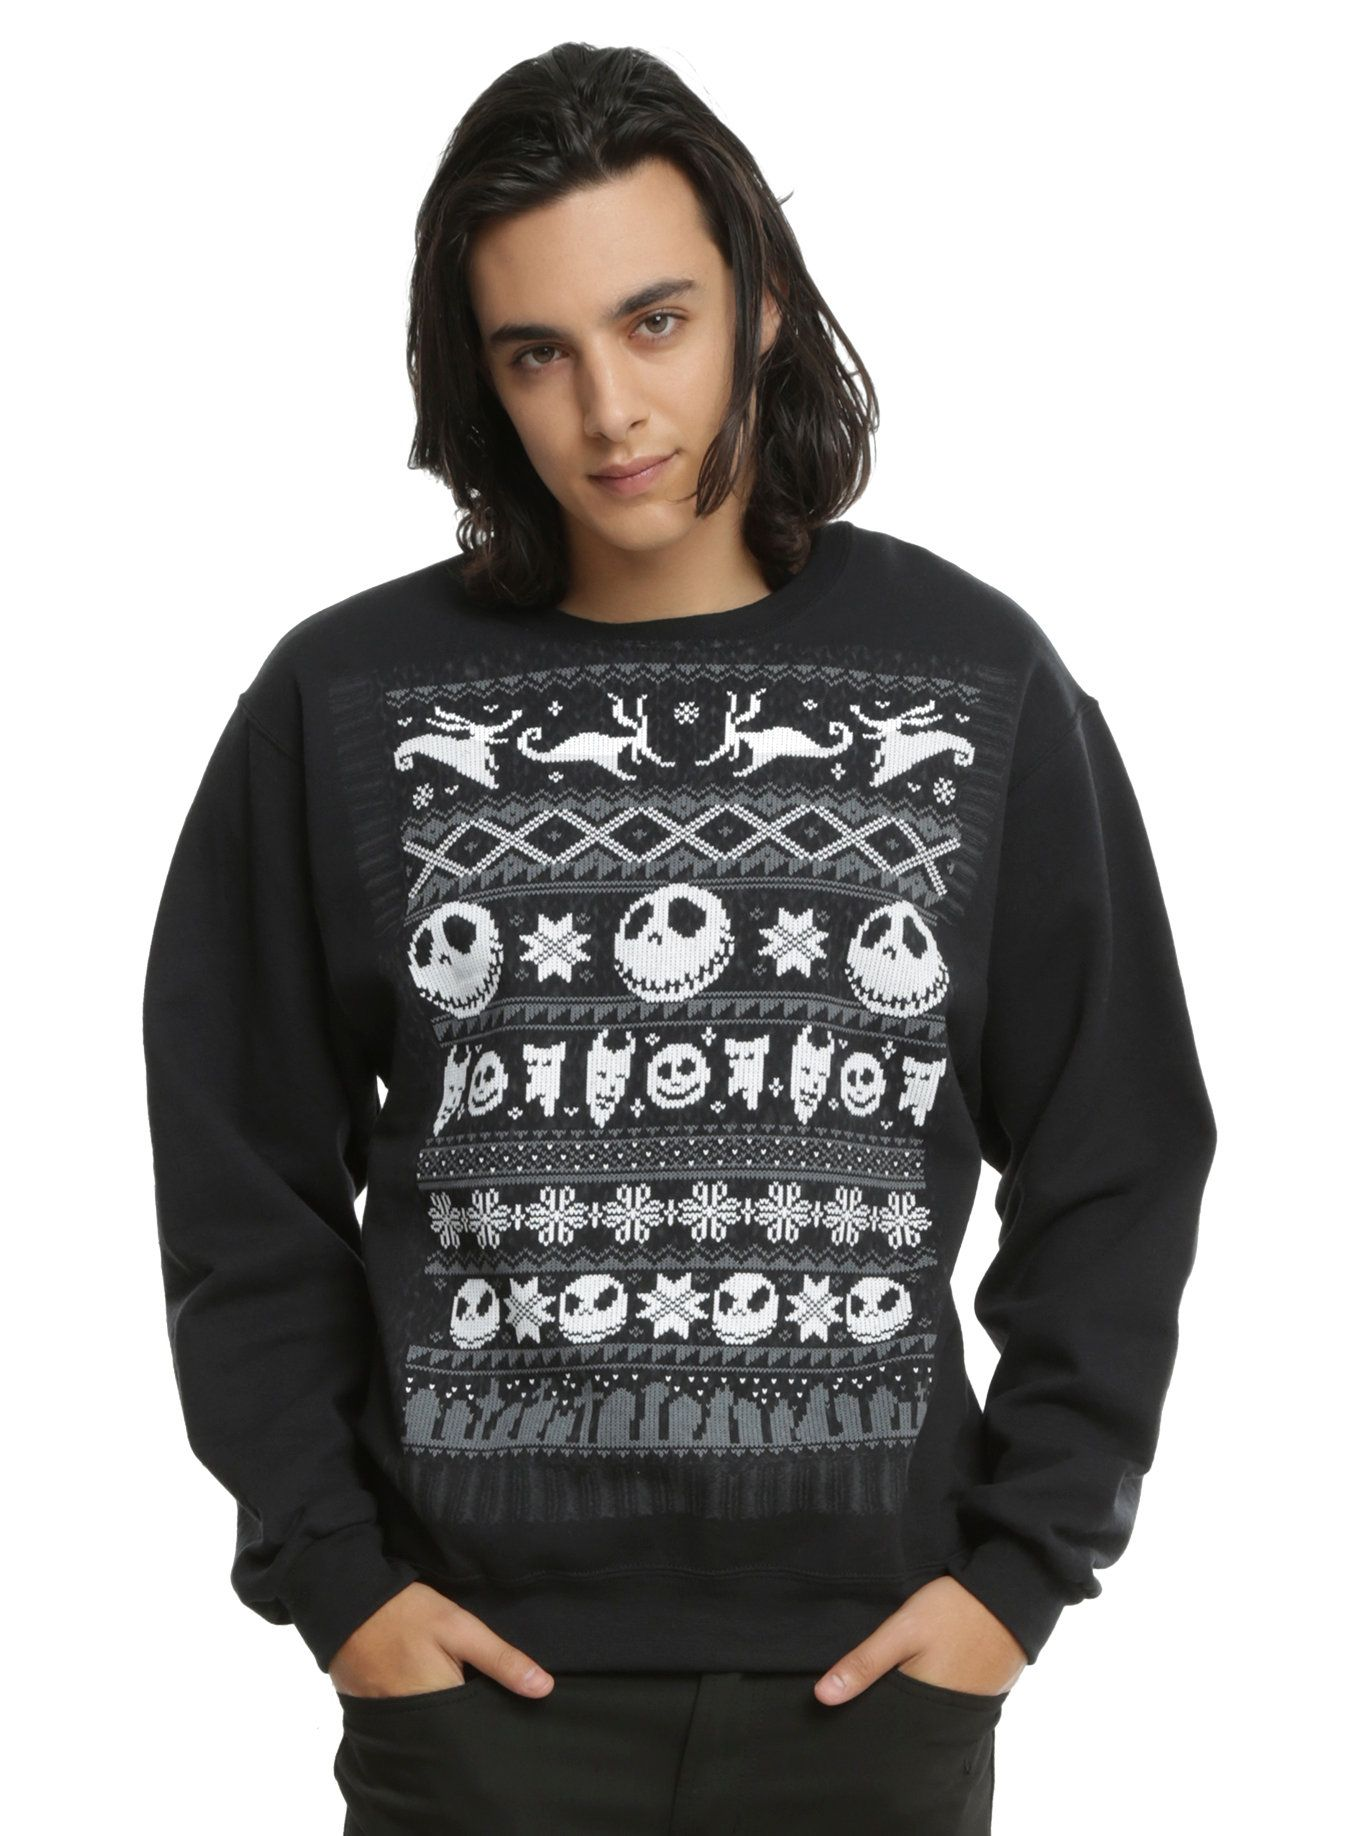 Nightmare Before Christmas Ugly Sweater Male Fashion Pinterest